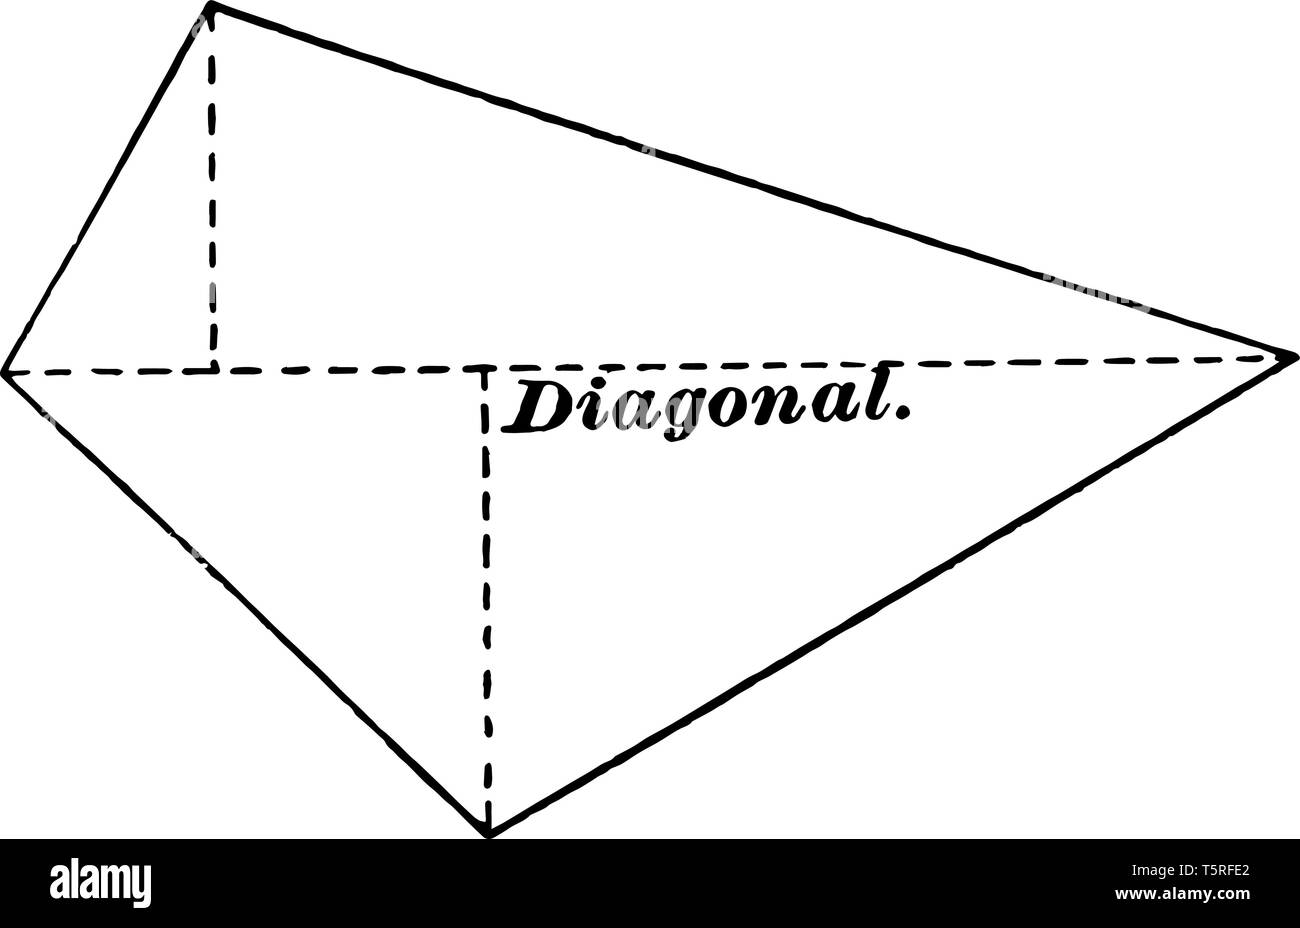 Quadrilateral Diagonals Properties Traffic Light And Formative